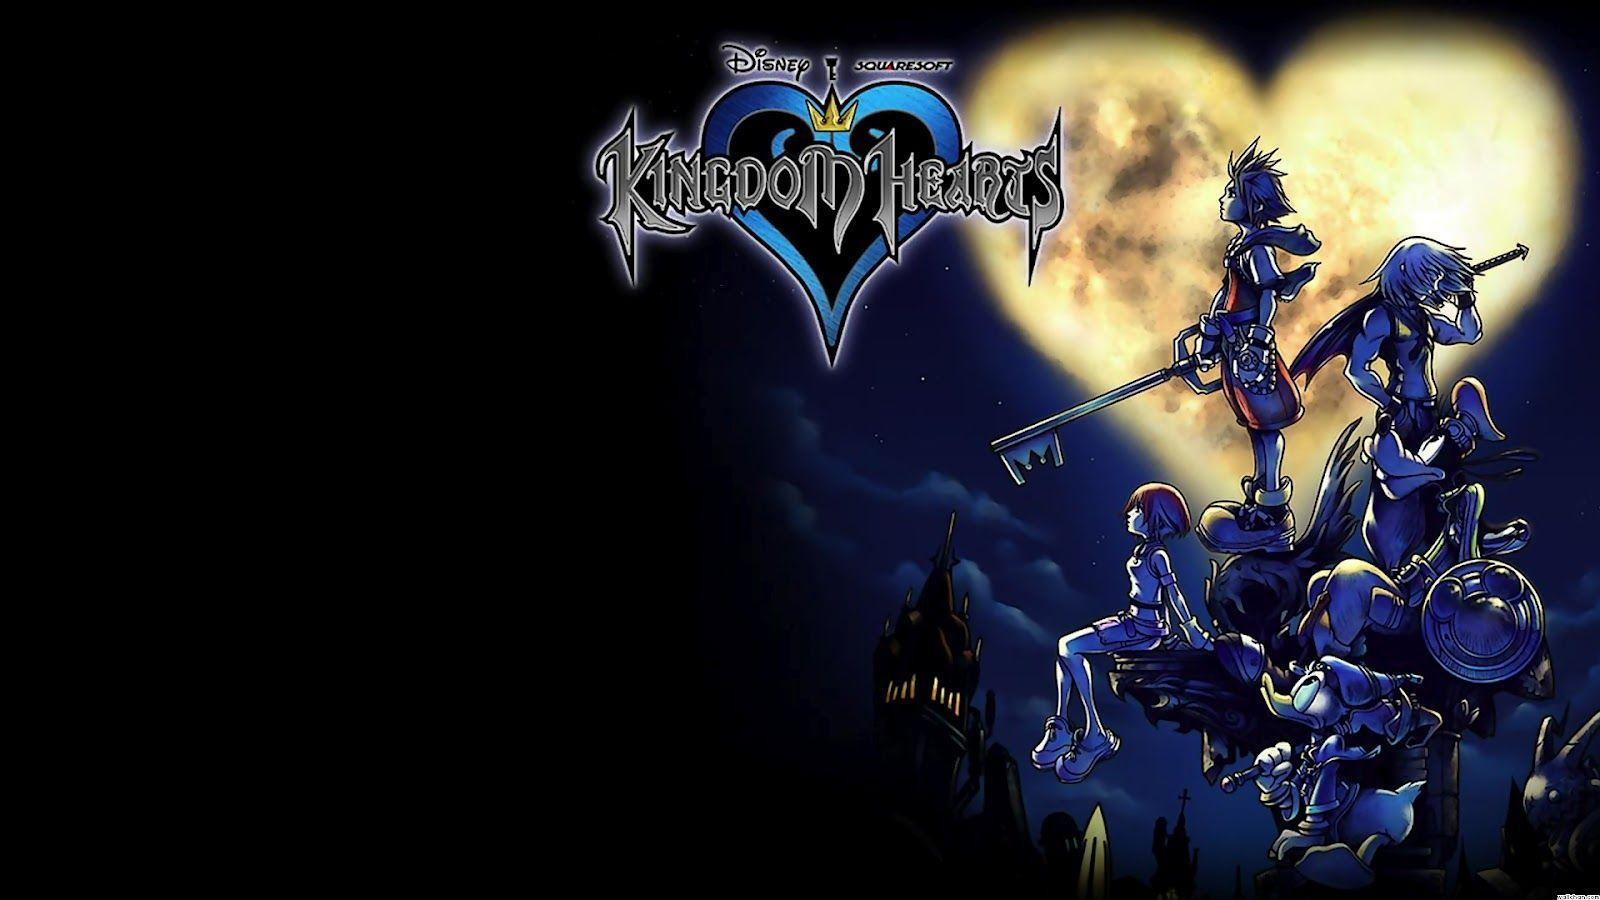 Kingdom Hearts 1 Wallpapers Wallpaper Cave